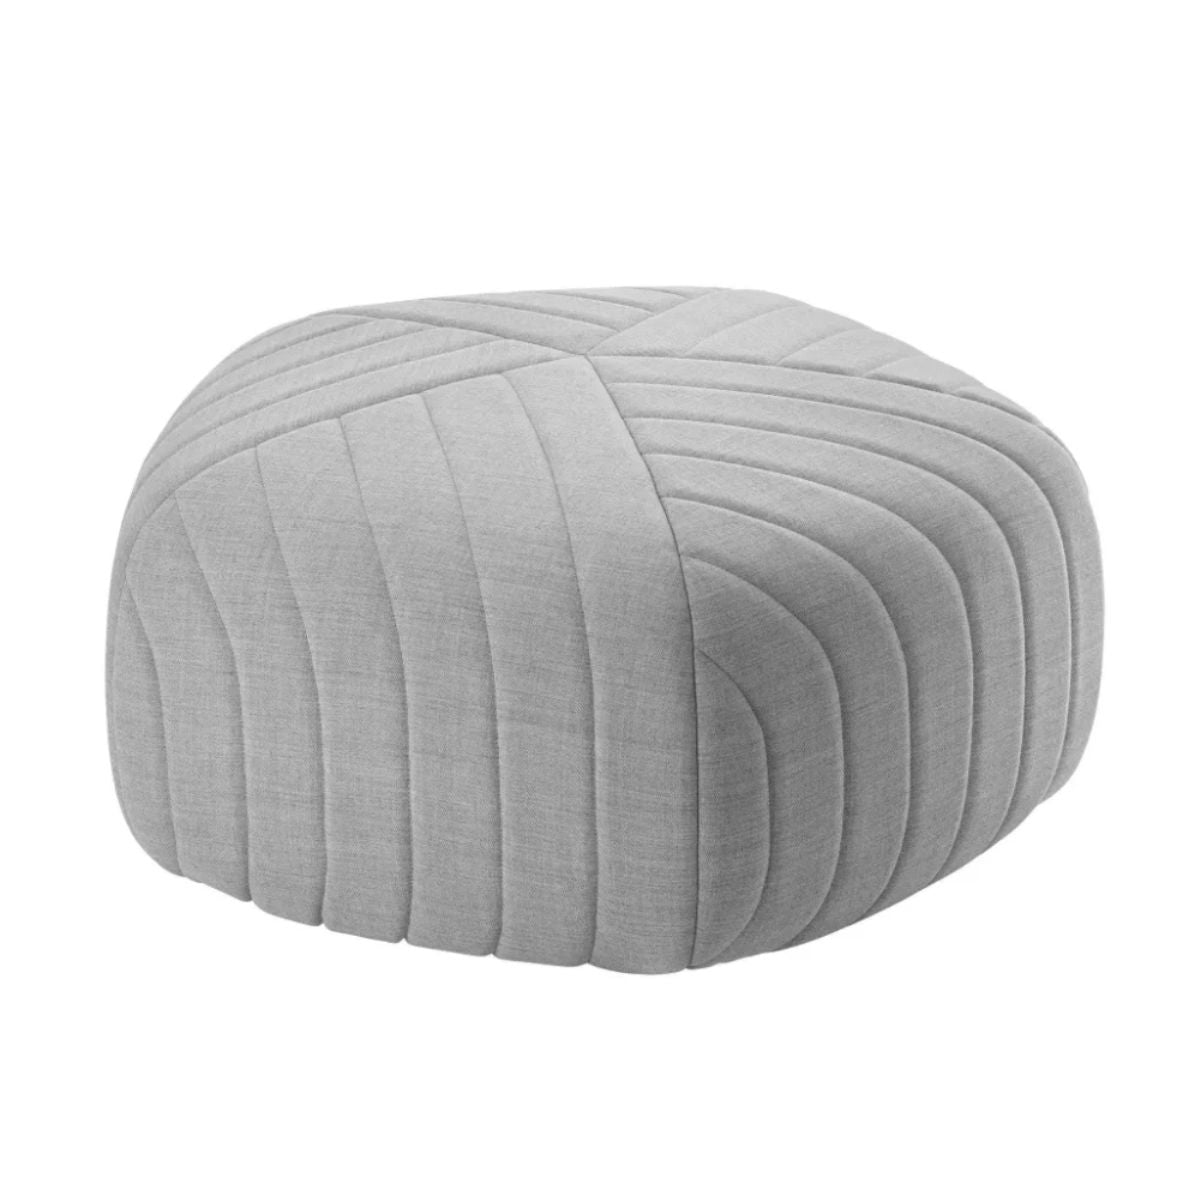 Muuto Five pouf, large, remix 123